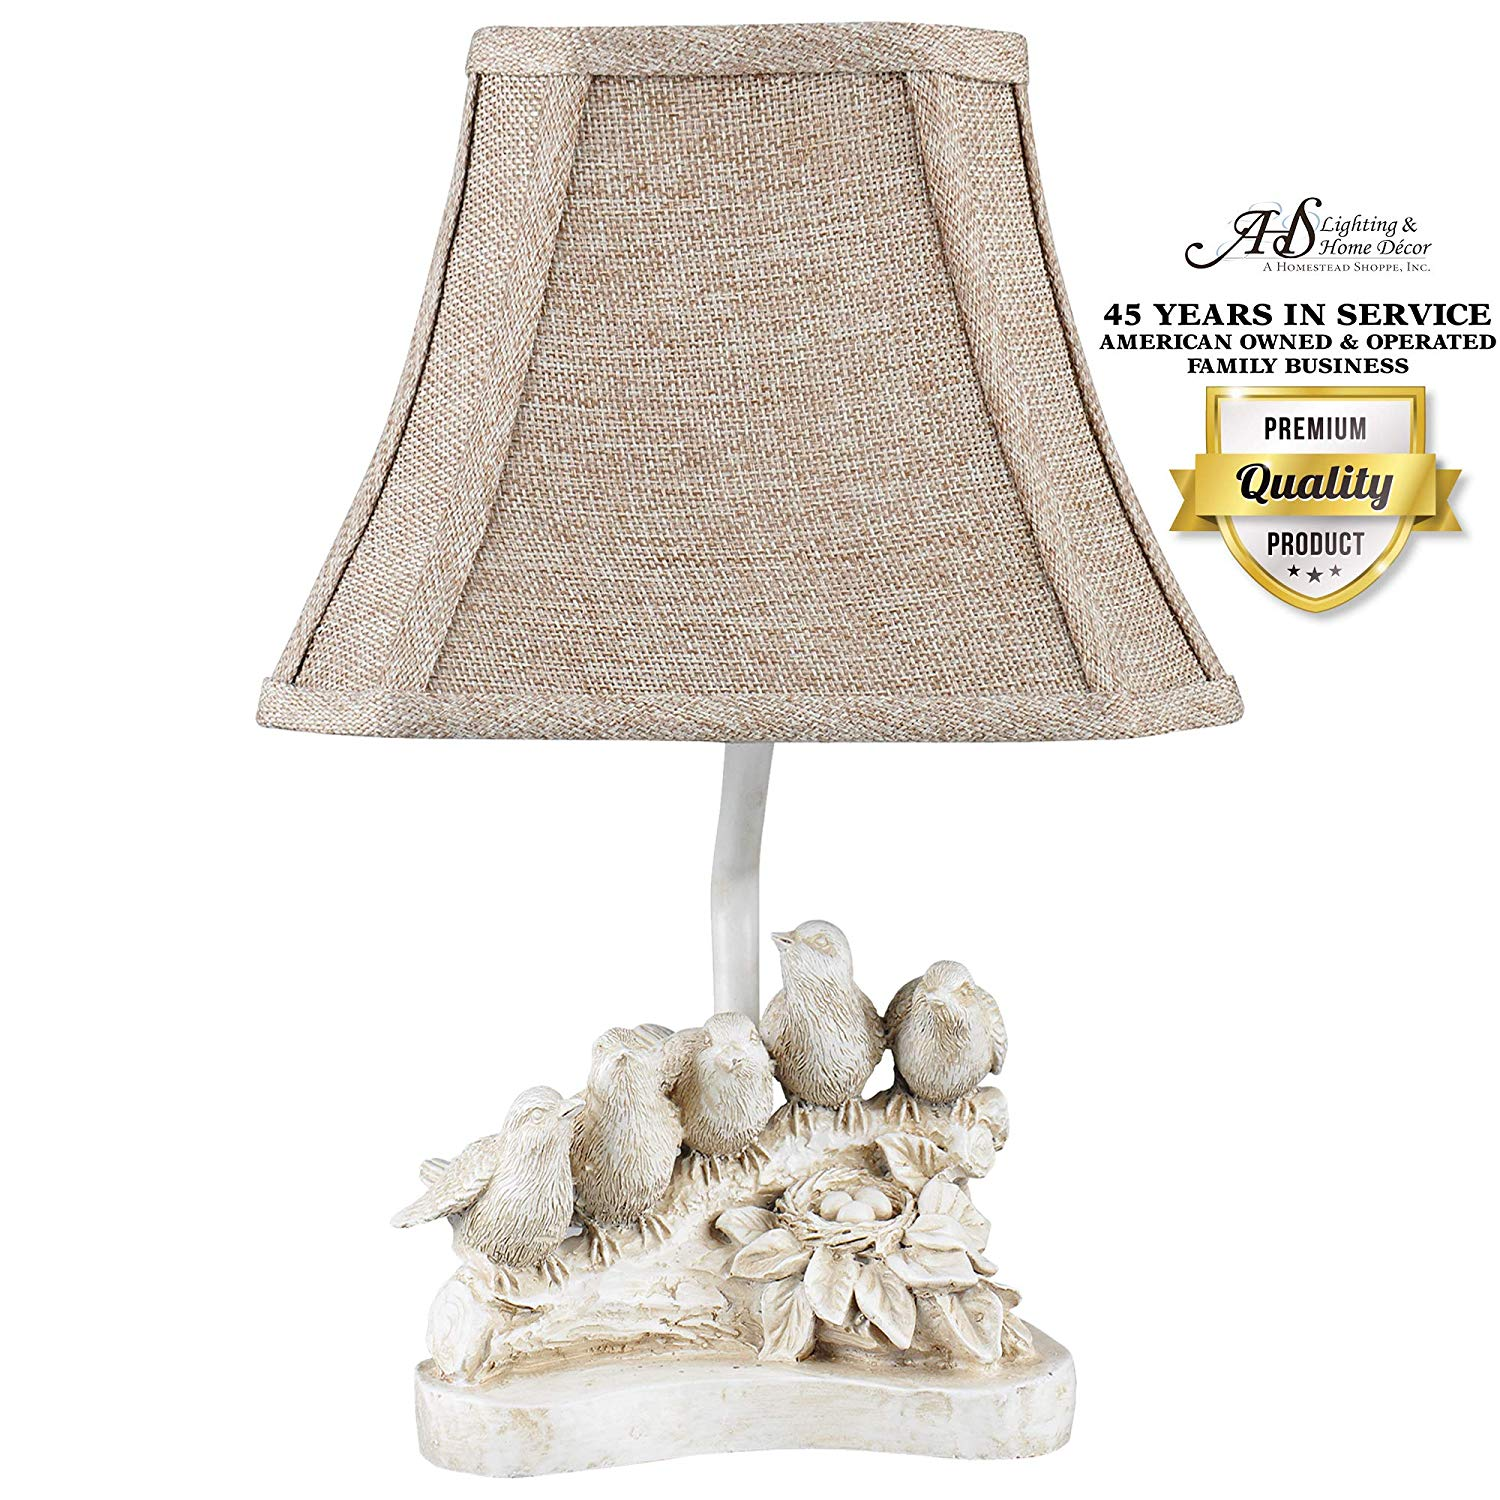 ahs lighting bird chorus decorative accent lamp natural table lamps beige polyresin perfect arm tables bookshelf side fireplace mantel cabin cottage small metal patio end resin